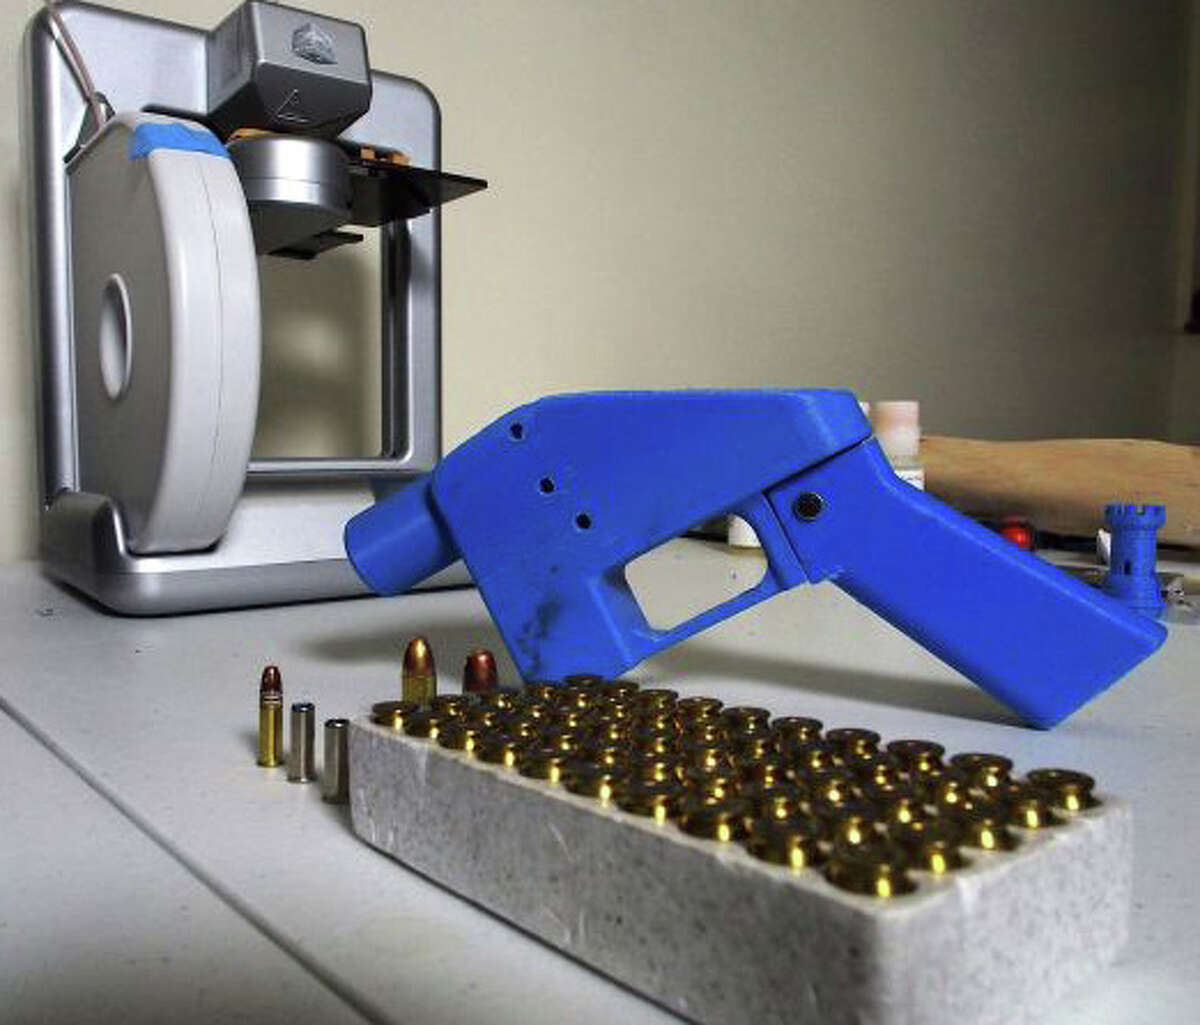 A Liberator pistol appears next to the 3D printer on which its components were made. The single-shot handgun is the first firearm that can be made entirely with plastic components forged with a 3D printer and computer-aided design (CAD) files downloaded from the Internet.